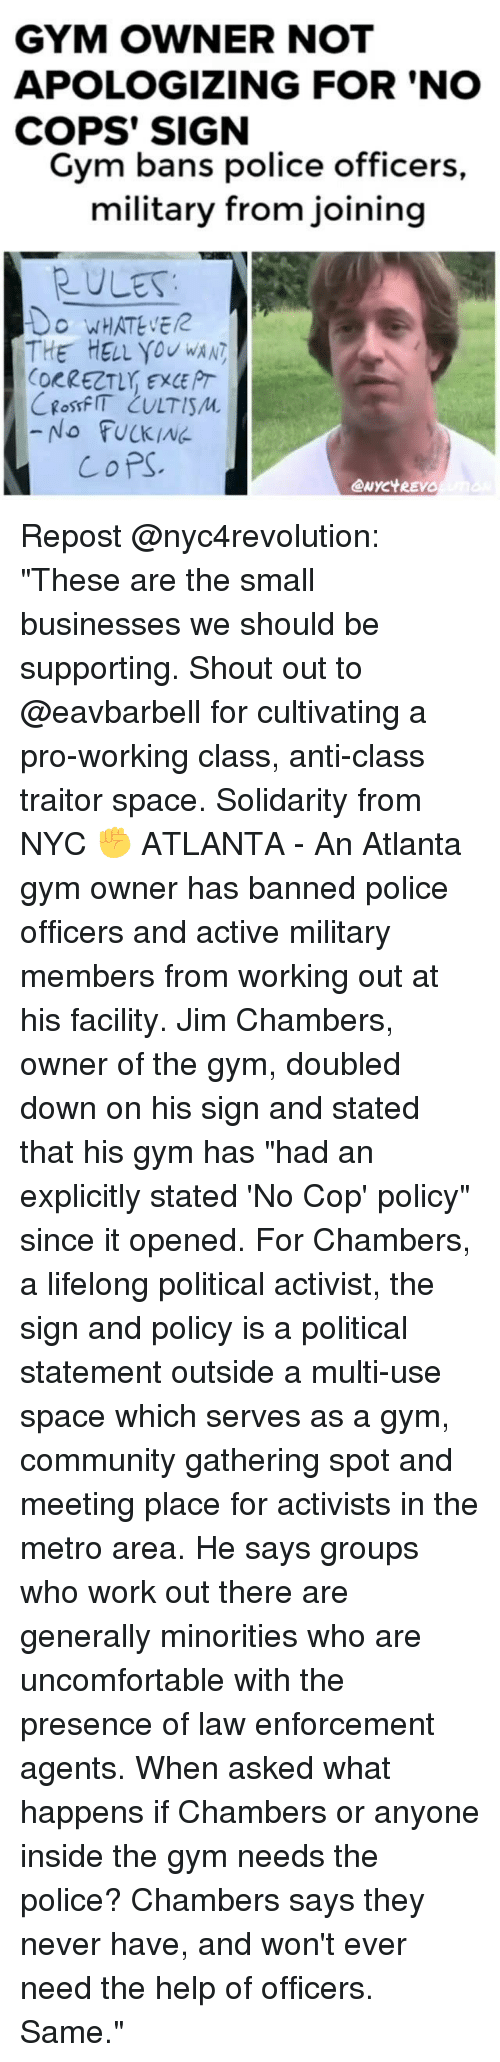 "Copping: GYM OWNER NOT  APOLOGIZING FOR 'NO  COPS' SIGN  Gym bans police officers  military from joining  RULES  O WHATEVE  THE HELL you wAN  ORRECT, EXCE PT  -No FUCKING  CoPS  eNYC't REVO Repost @nyc4revolution: ""These are the small businesses we should be supporting. Shout out to @eavbarbell for cultivating a pro-working class, anti-class traitor space. Solidarity from NYC ✊ ATLANTA - An Atlanta gym owner has banned police officers and active military members from working out at his facility. Jim Chambers, owner of the gym, doubled down on his sign and stated that his gym has ""had an explicitly stated 'No Cop' policy"" since it opened. For Chambers, a lifelong political activist, the sign and policy is a political statement outside a multi-use space which serves as a gym, community gathering spot and meeting place for activists in the metro area. He says groups who work out there are generally minorities who are uncomfortable with the presence of law enforcement agents. When asked what happens if Chambers or anyone inside the gym needs the police? Chambers says they never have, and won't ever need the help of officers. Same."""